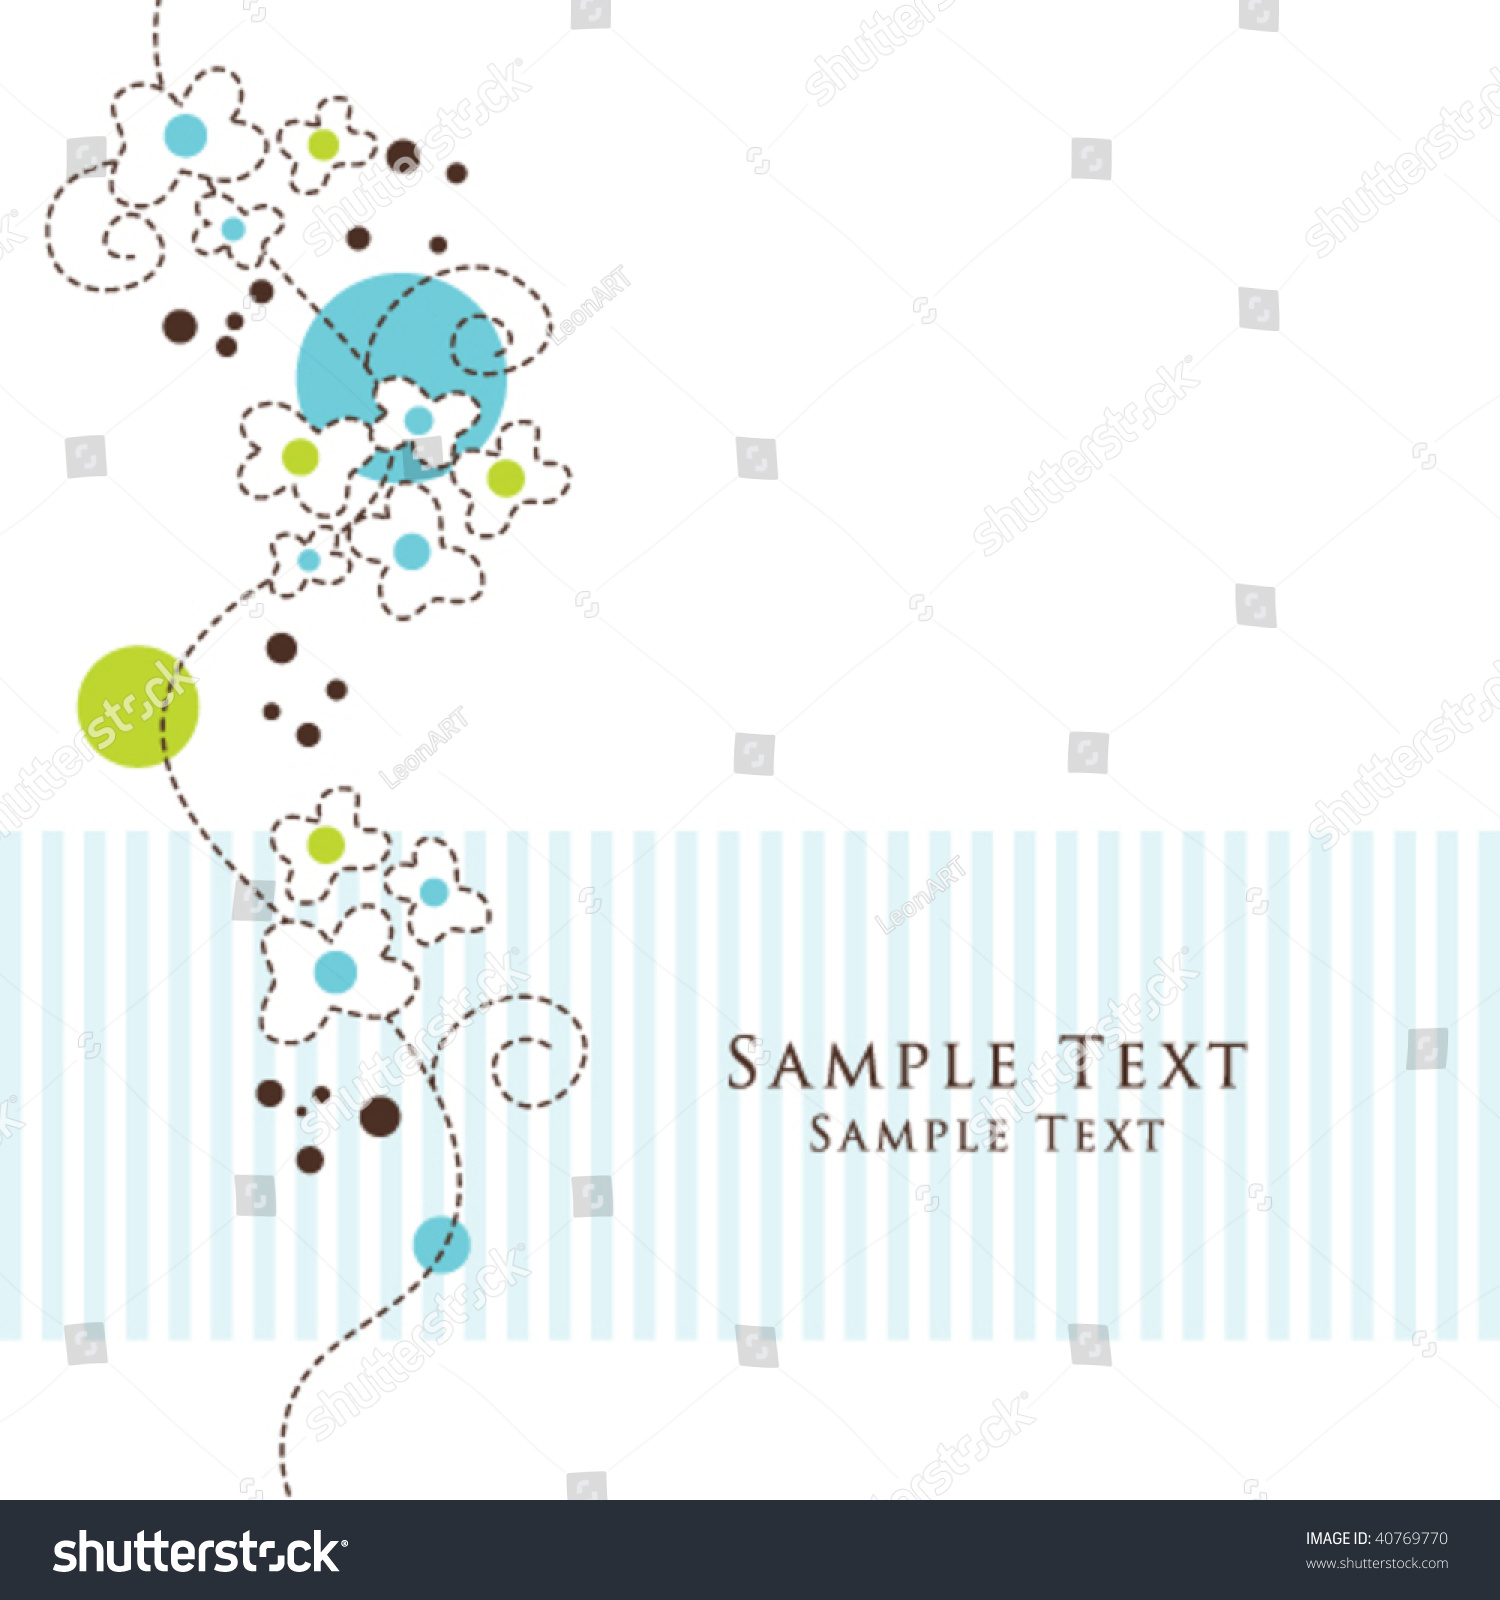 Nice greeting card template cute simple artistic stock vector nice greeting card template cute simple artistic hand drawn illustration doodle for baby shower kristyandbryce Image collections